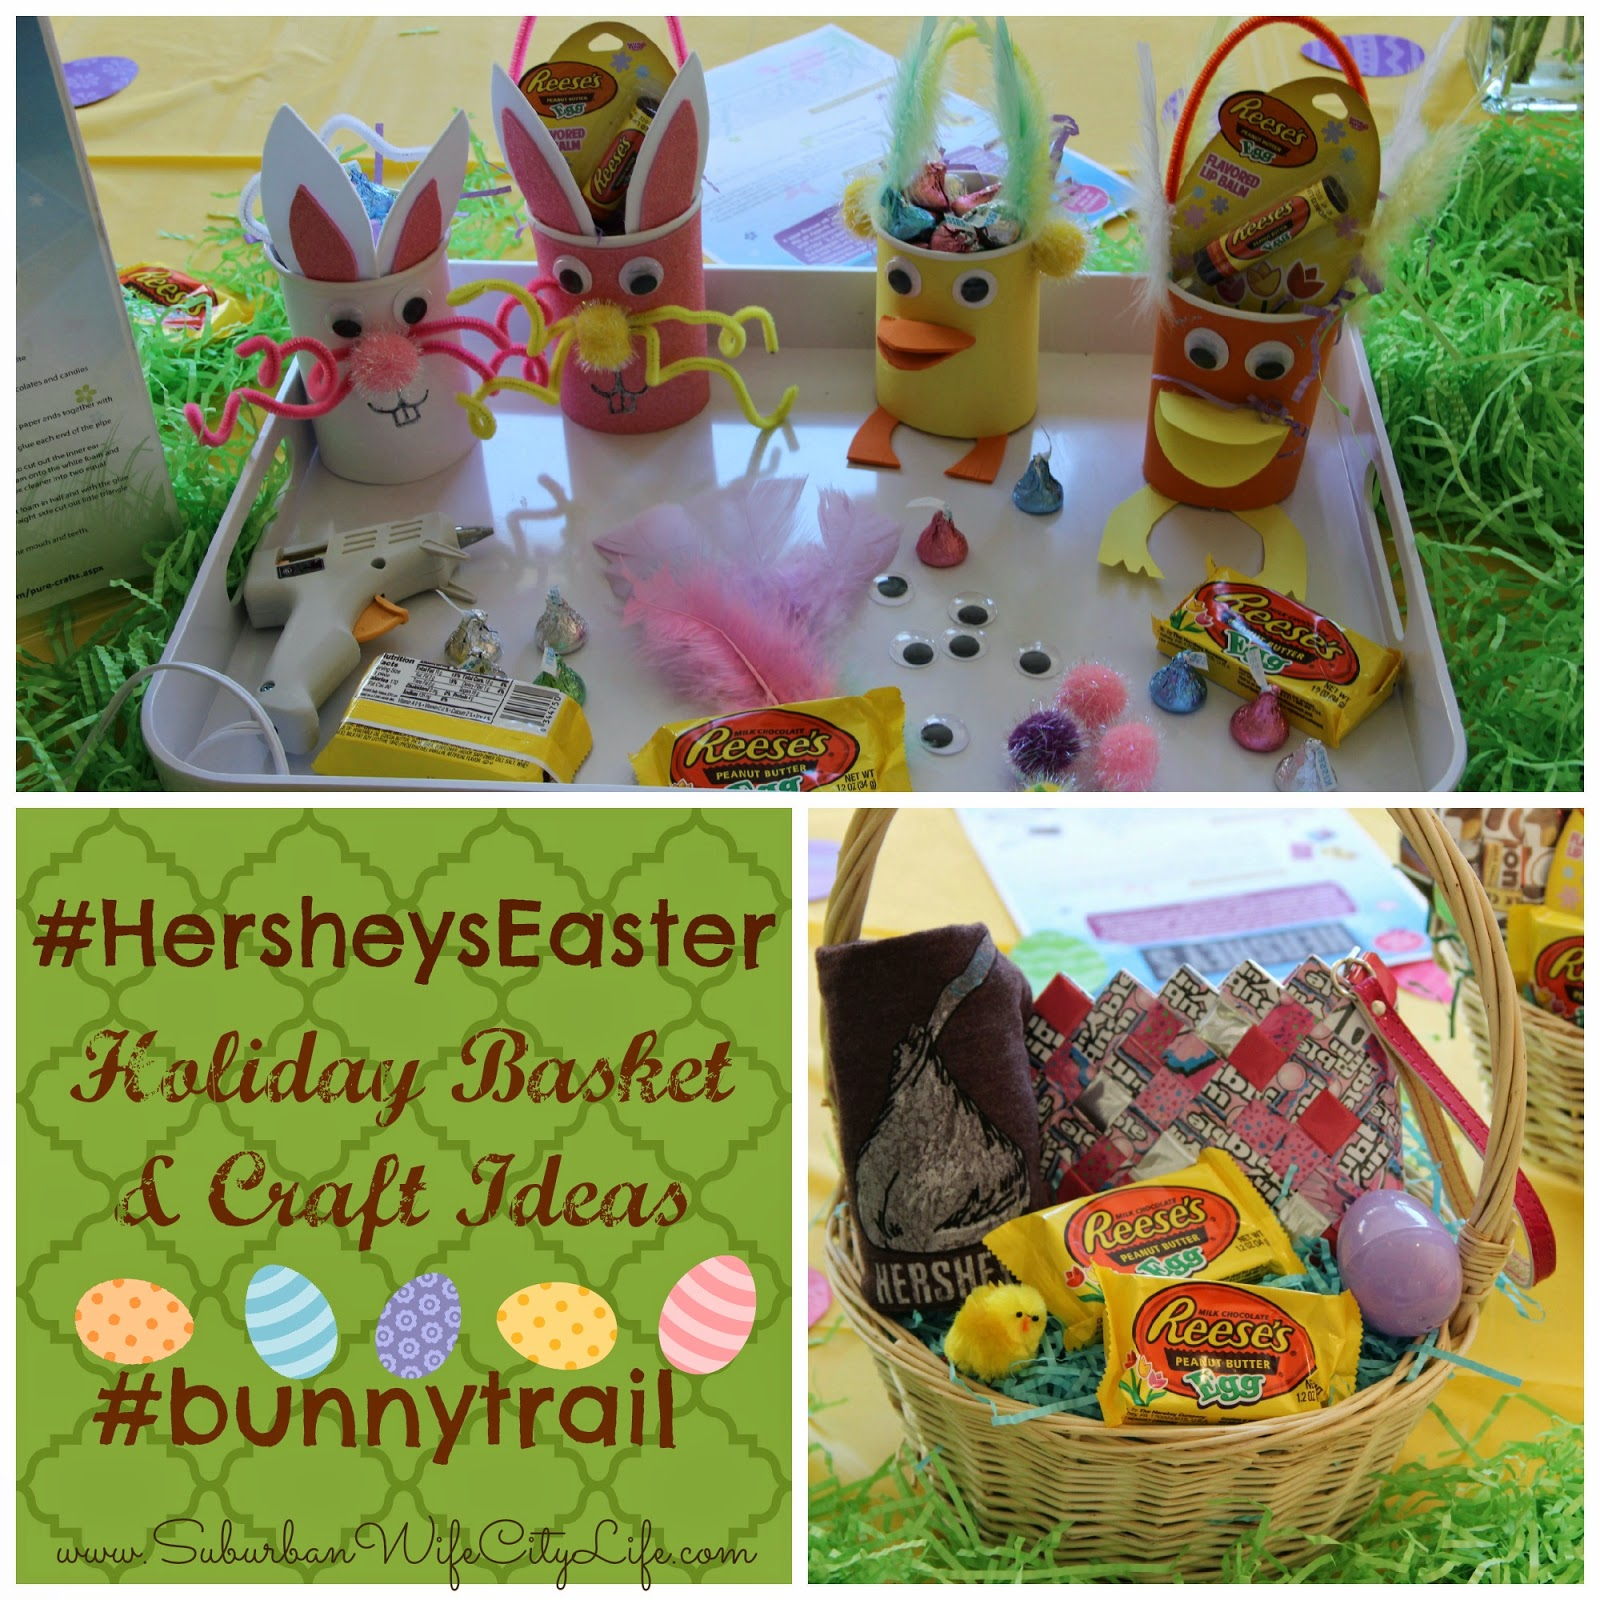 Easter basket ideas crafts from hersheys bunnytrail suburban easter basket ideas crafts from hersheys bunnytrail suburban wife city life negle Gallery